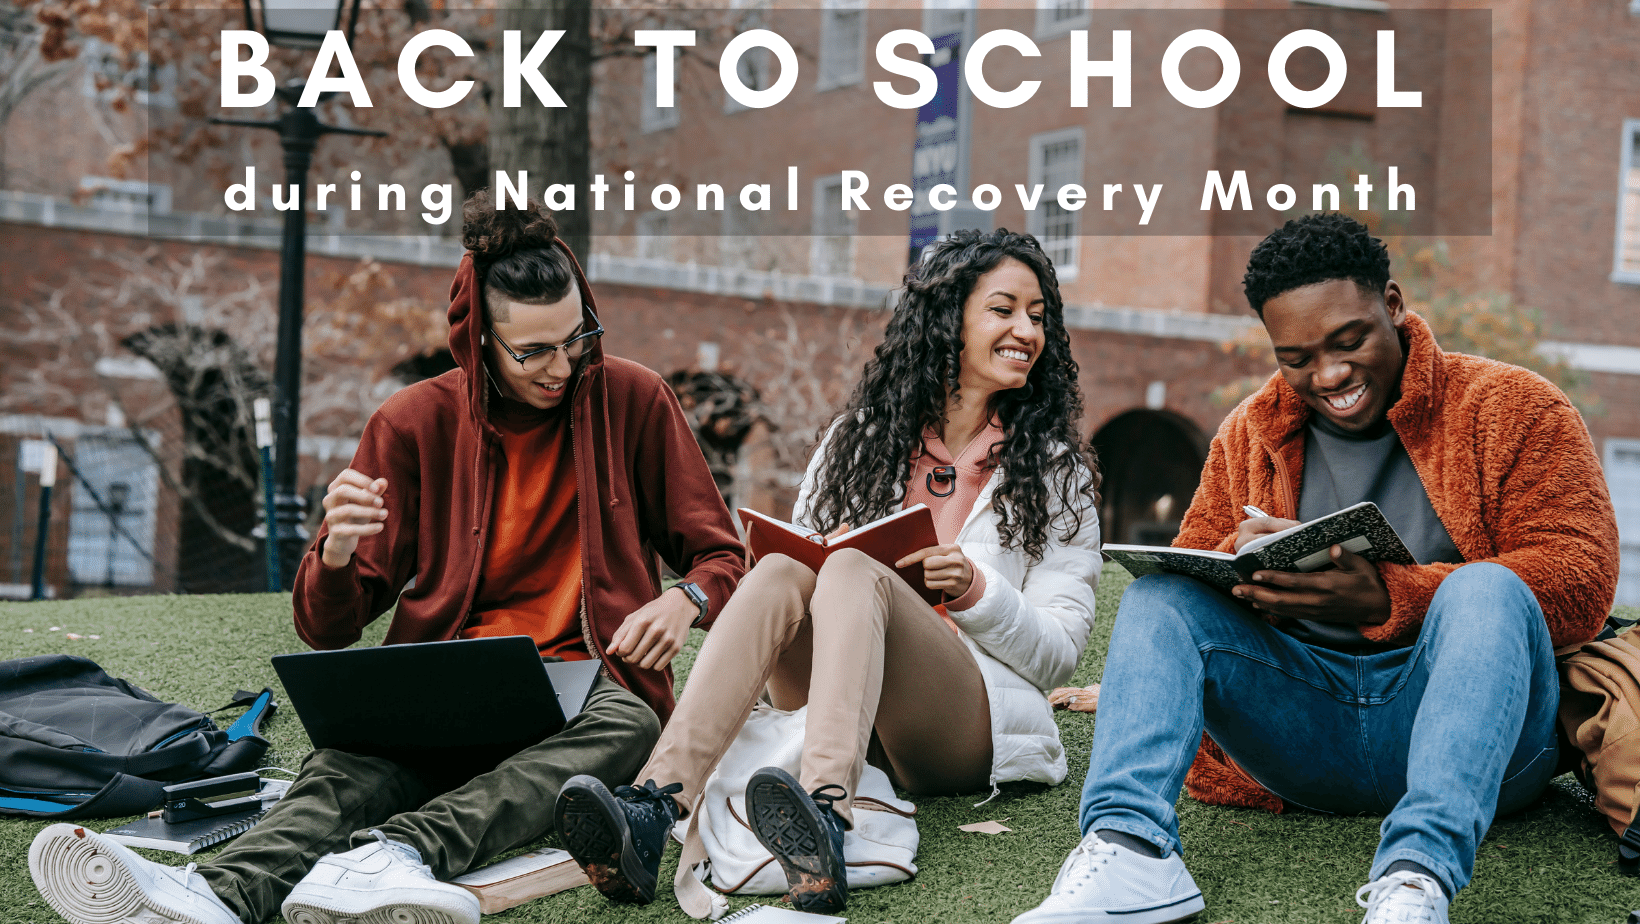 Back to school National Recovery Month